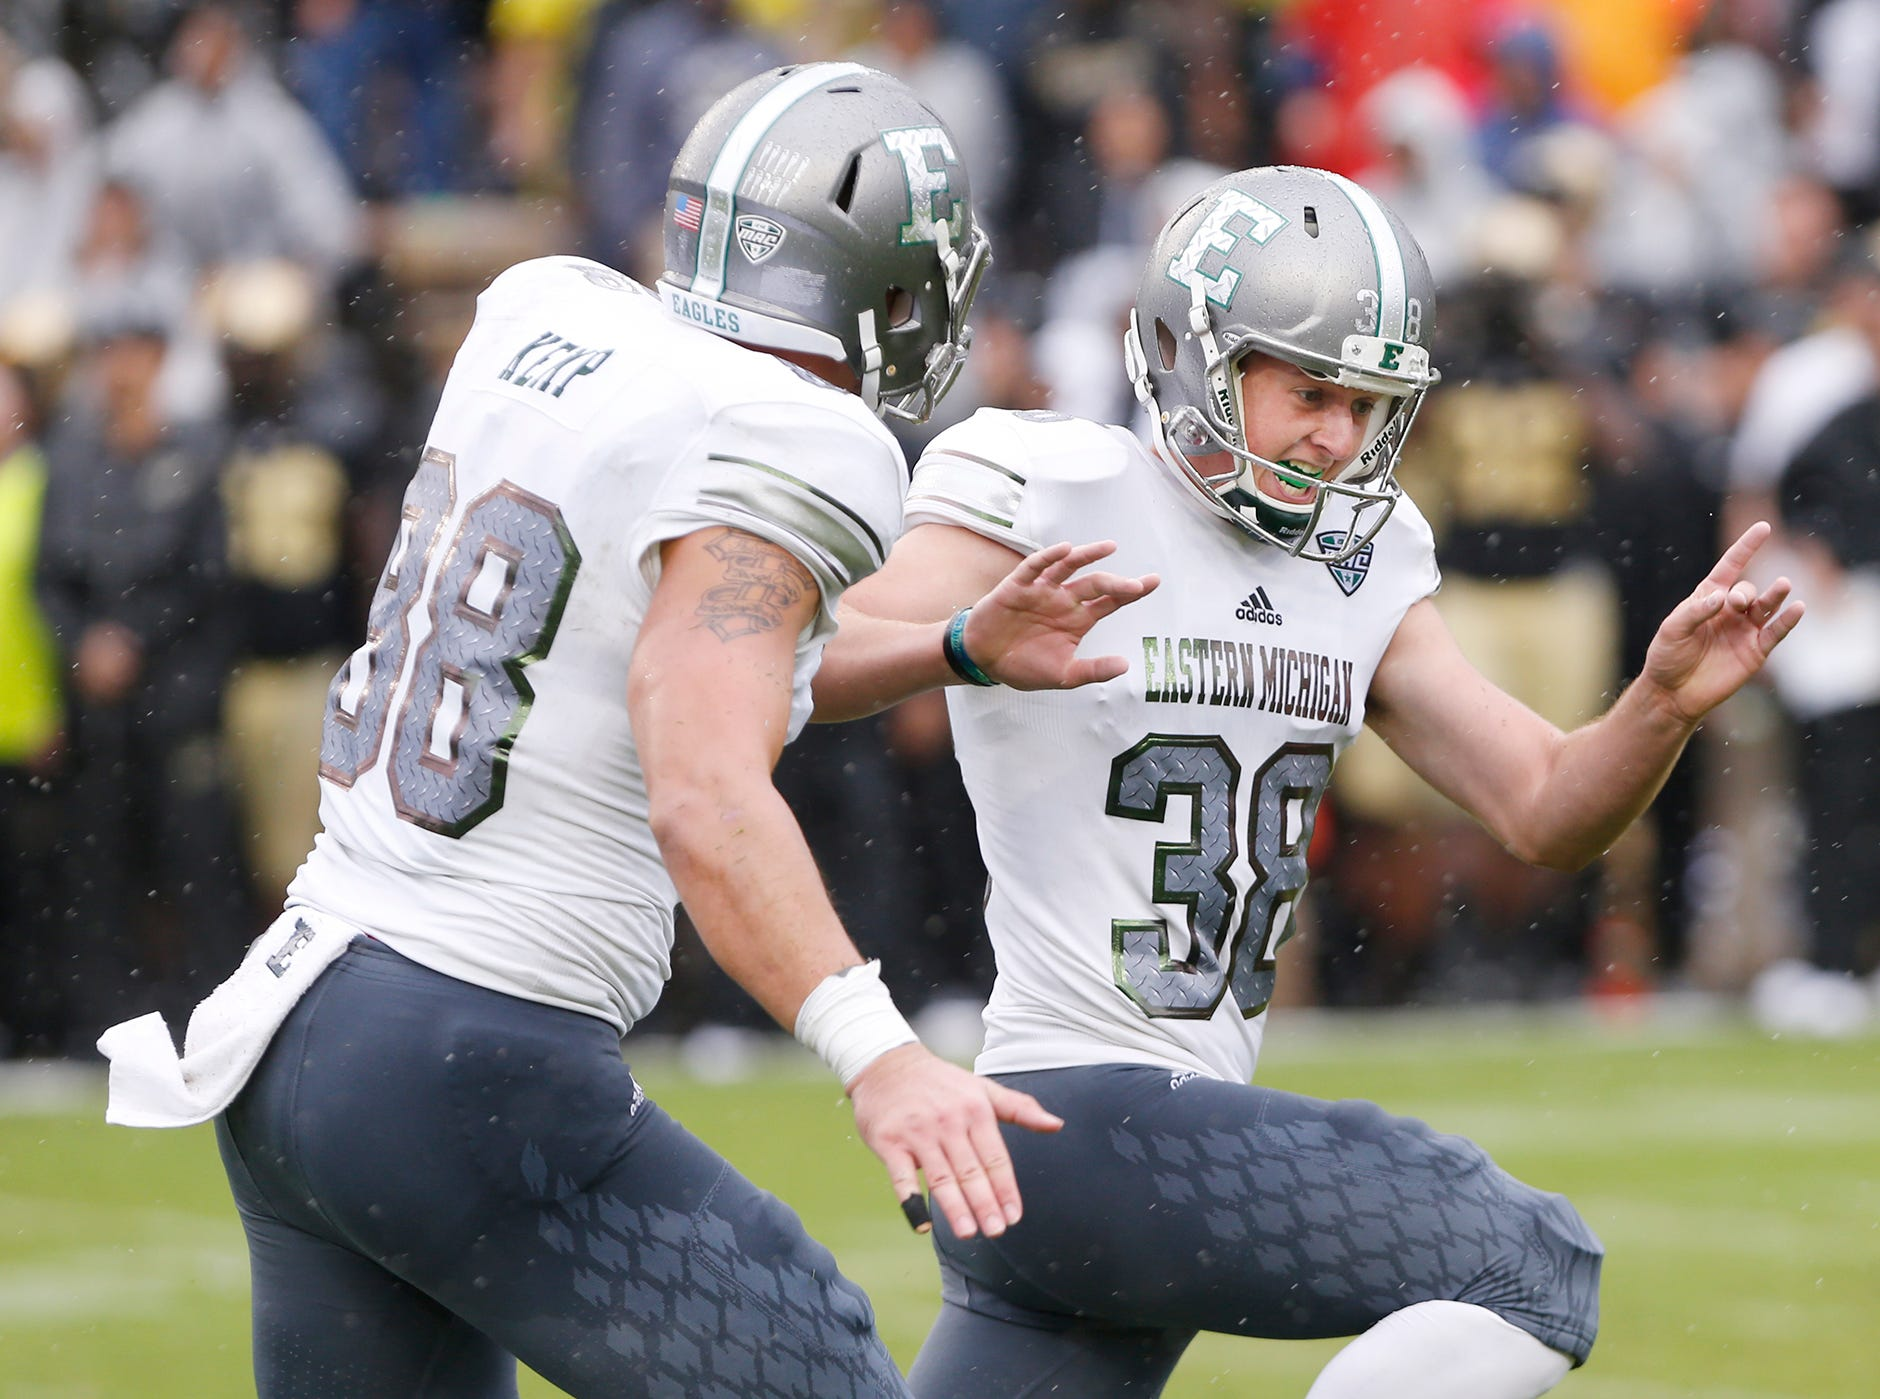 Eastern Michigan kicker Chad Ryland, right, reacts after his field goal as time ran out lifted the Eagles to a 20-19 victory over Purdue Saturday, September 8, 2018, in West Lafayette.